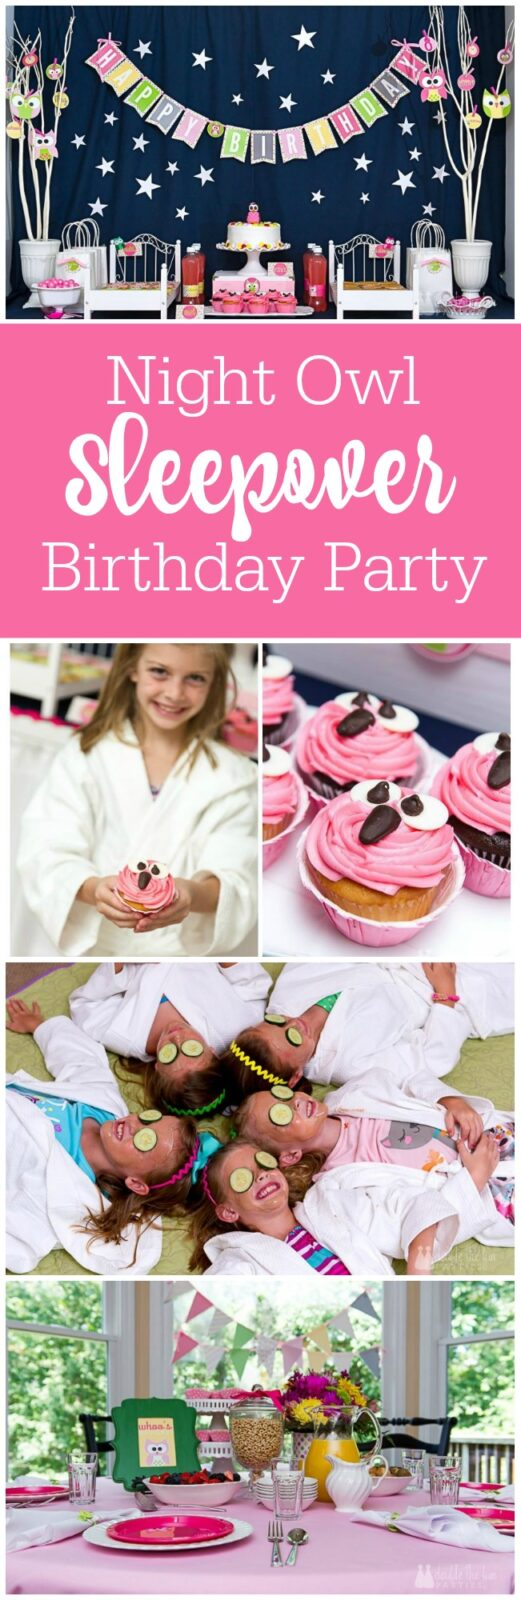 Host a night owl sleepover party - the party's already been planned for you - The Party Teacher